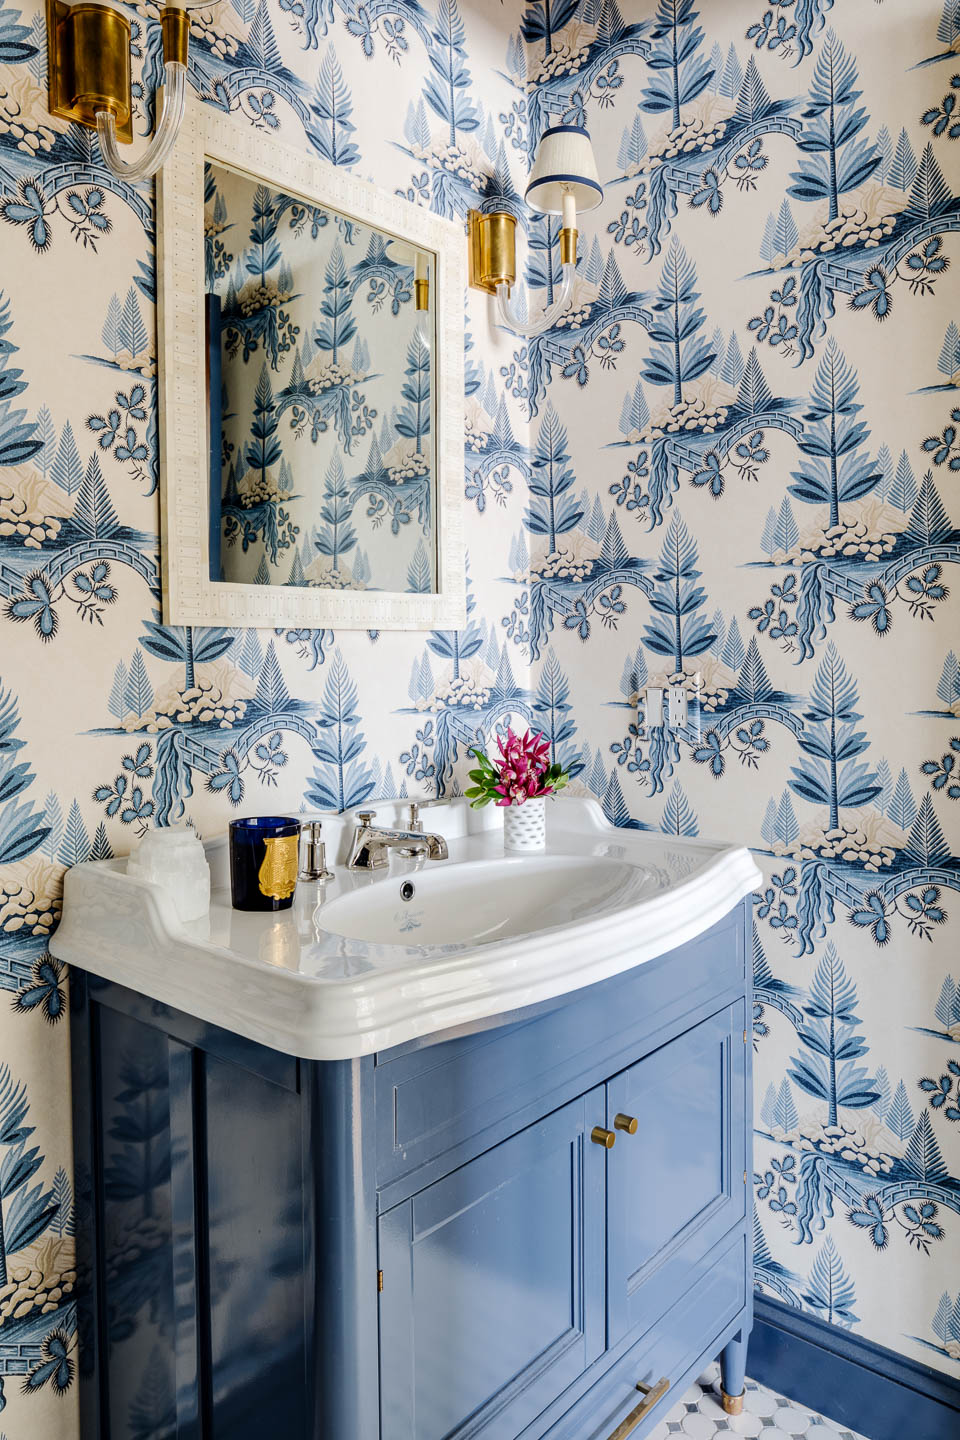 Digs, Digs Design, Matunuck, Matunuck Beach, Beach Design, Rhode Island Interior Design, Interior Design, Renovation, Bathroom, Bathroom Design, Vanity, Bathroom Wallpaper, Wallpaper, Blue Bathroom, Powder Room